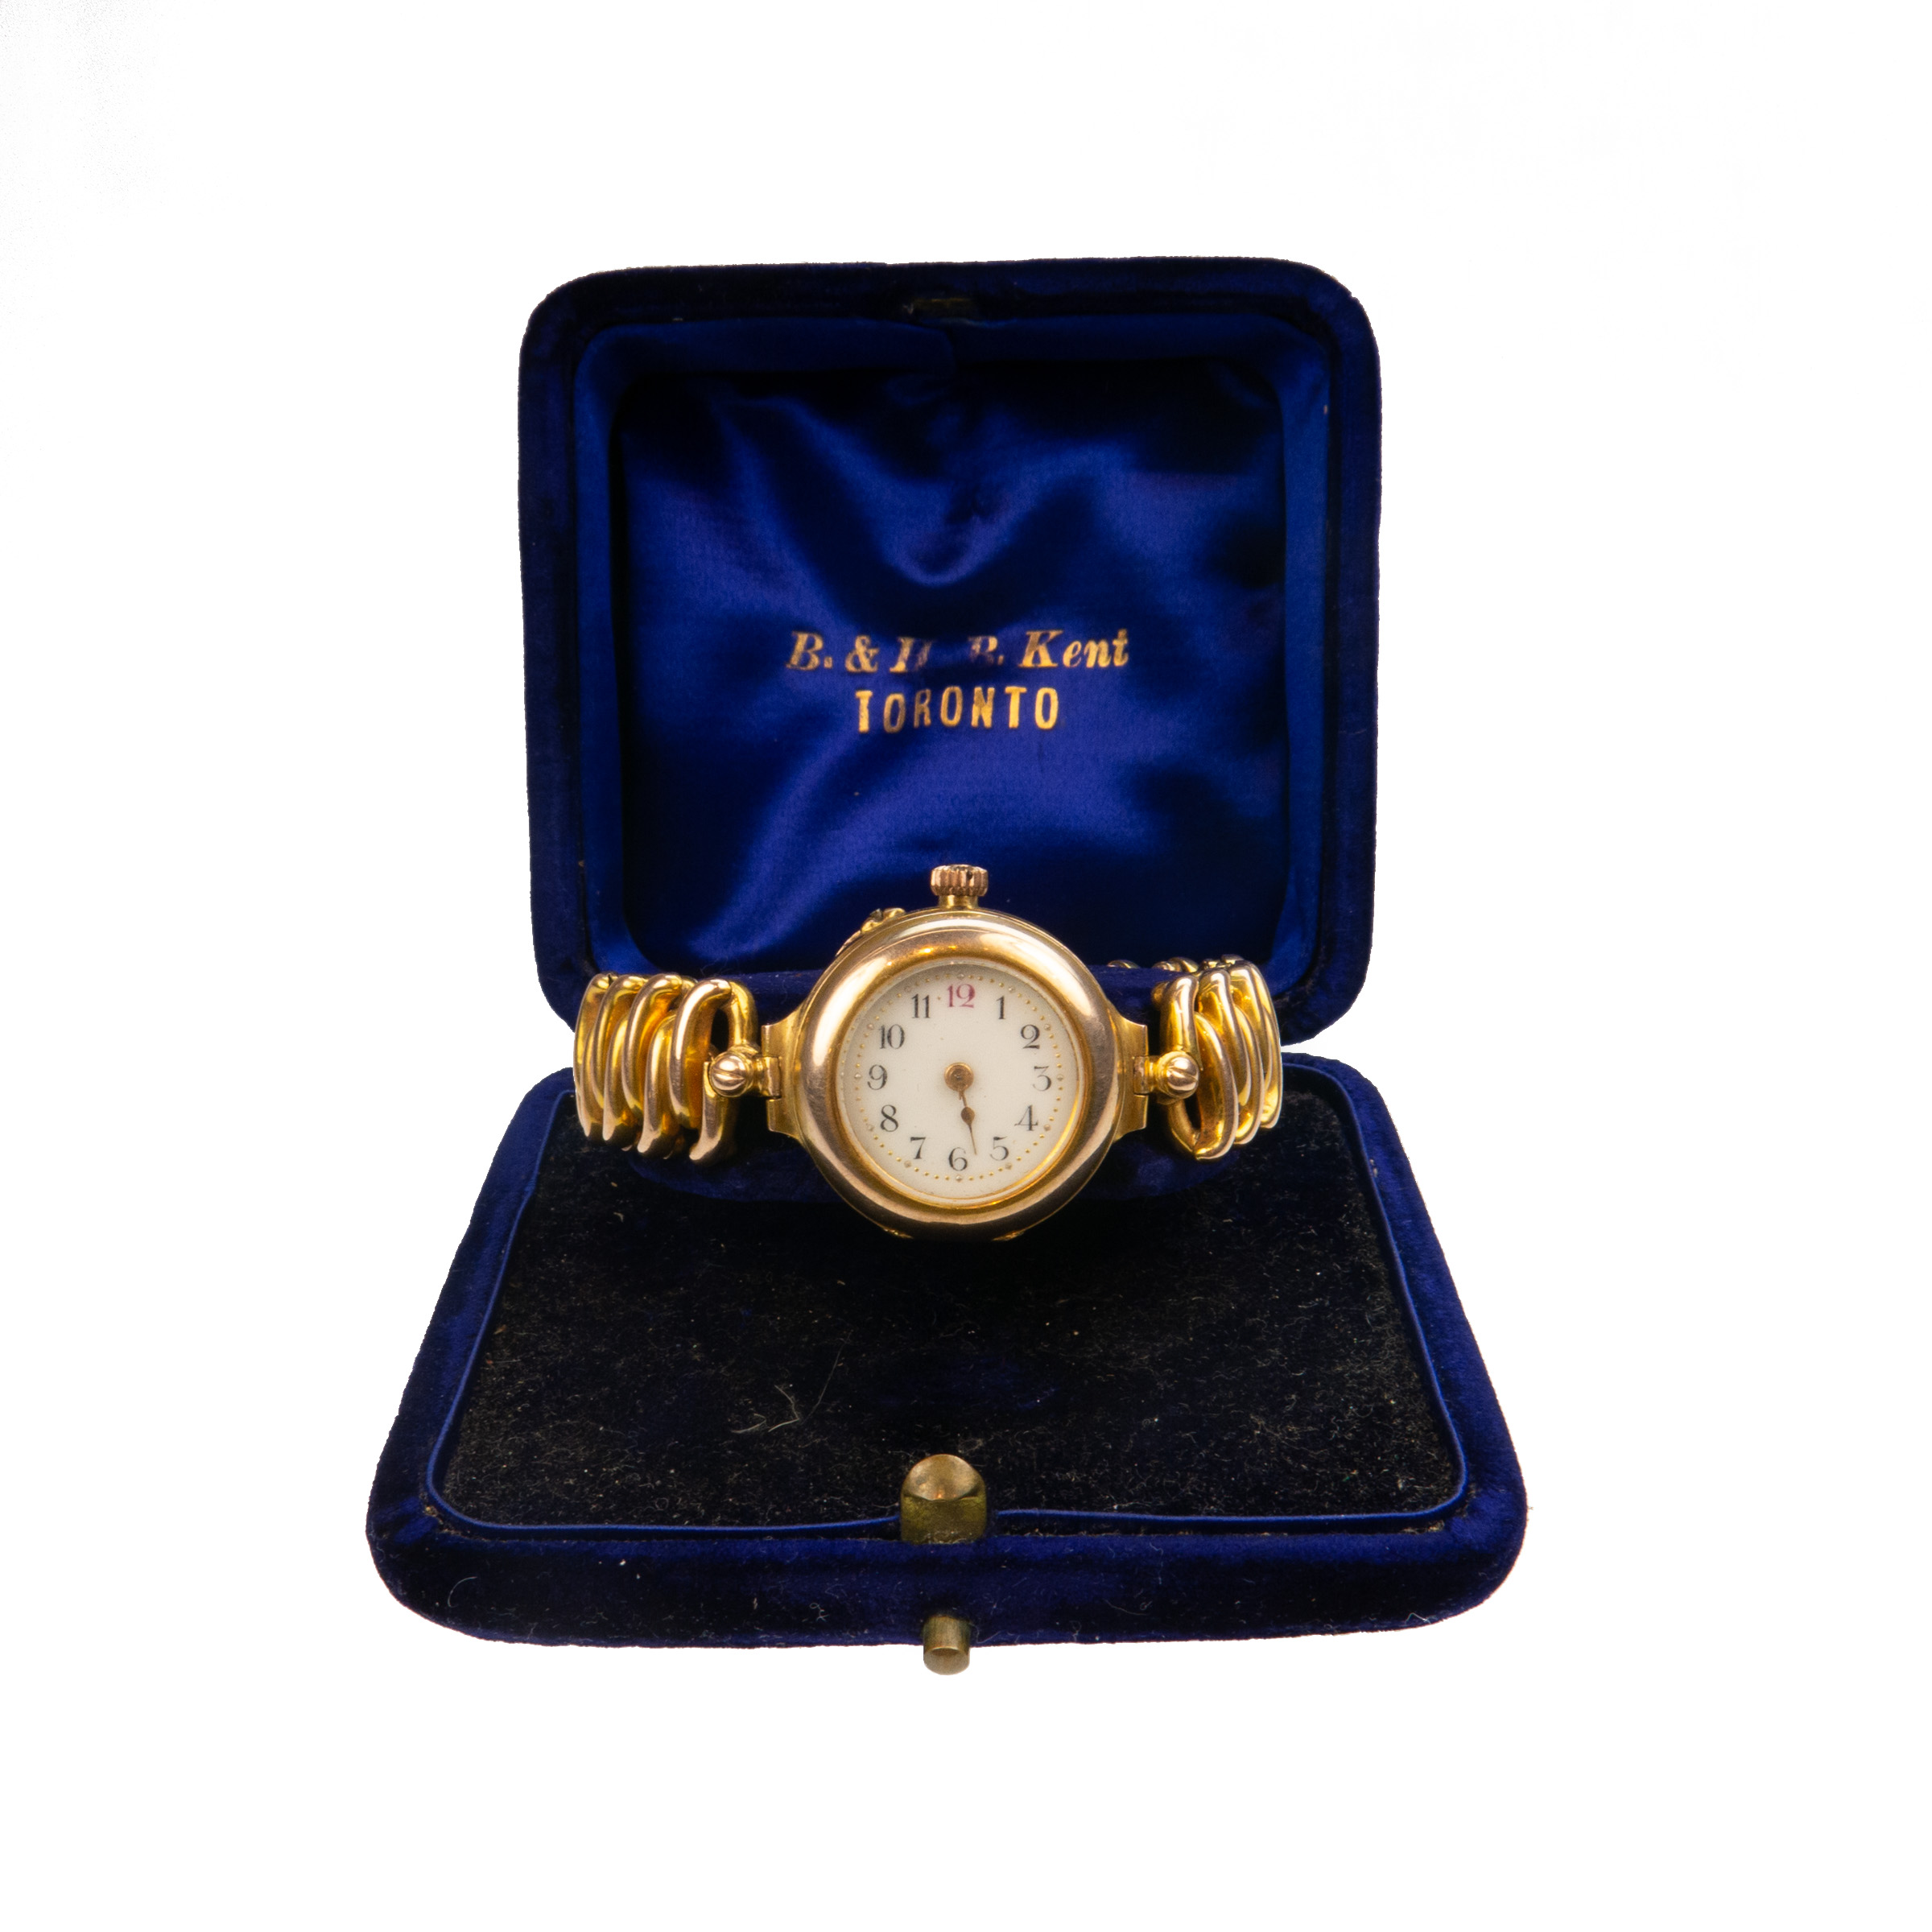 Lady's Early 20th Century Wristwatch